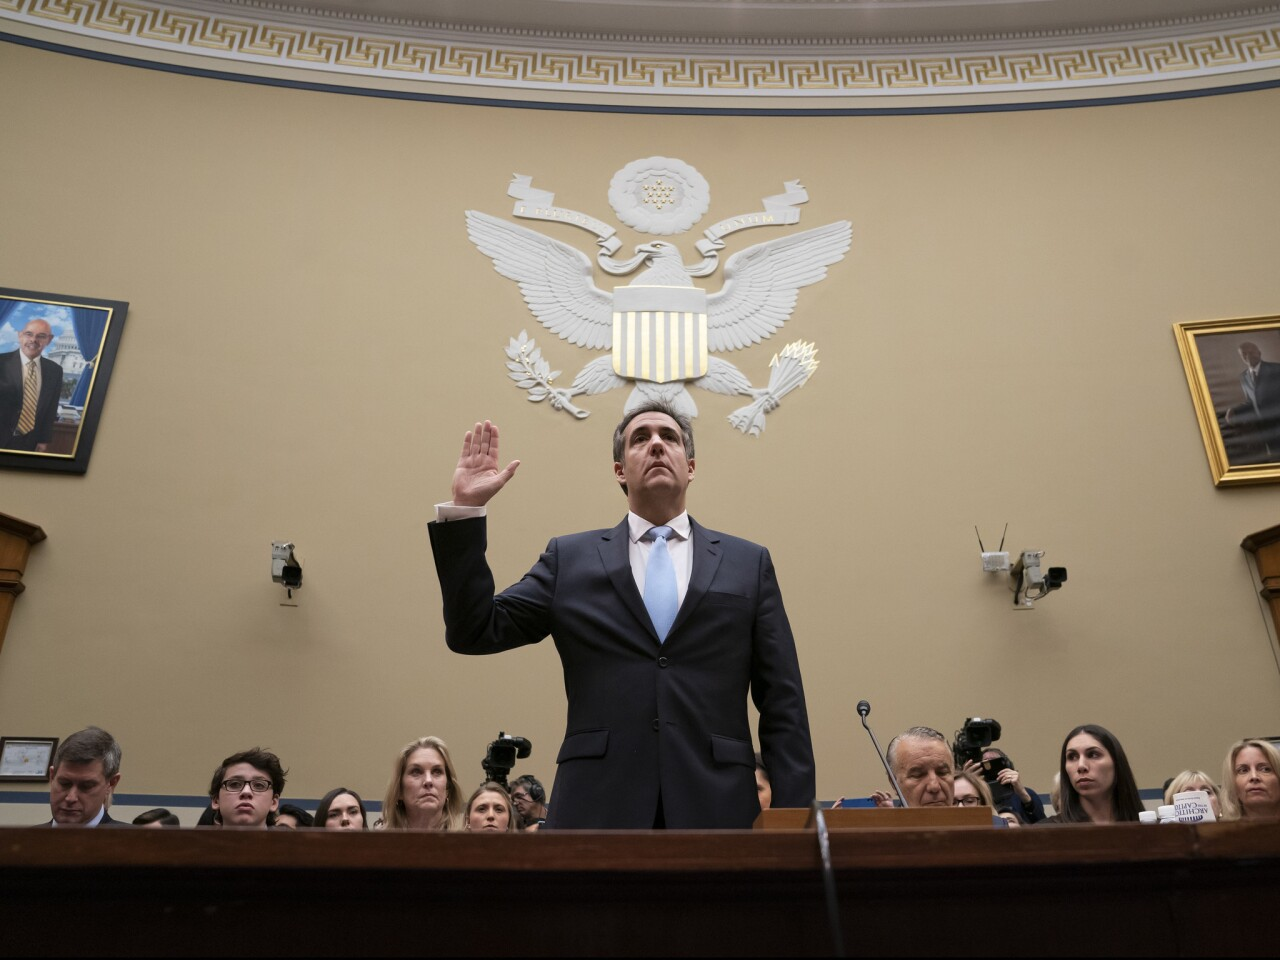 Michael Cohen, President Donald Trump's former personal lawyer, is sworn in to testify on Capitol Hill in Washington.